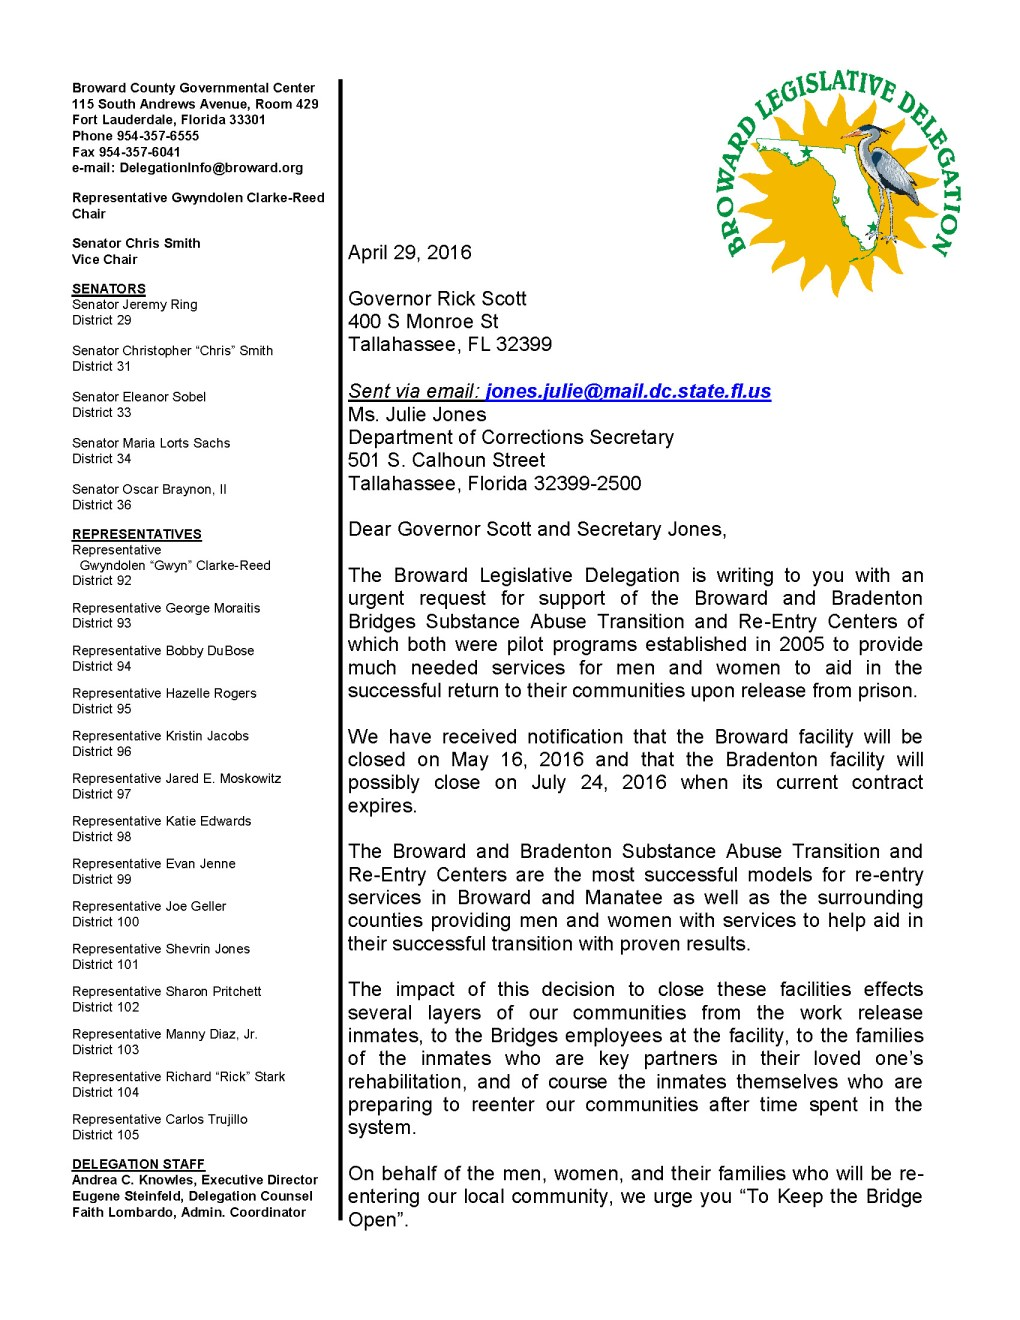 Bridges_Support_Letter_Full_Page_1